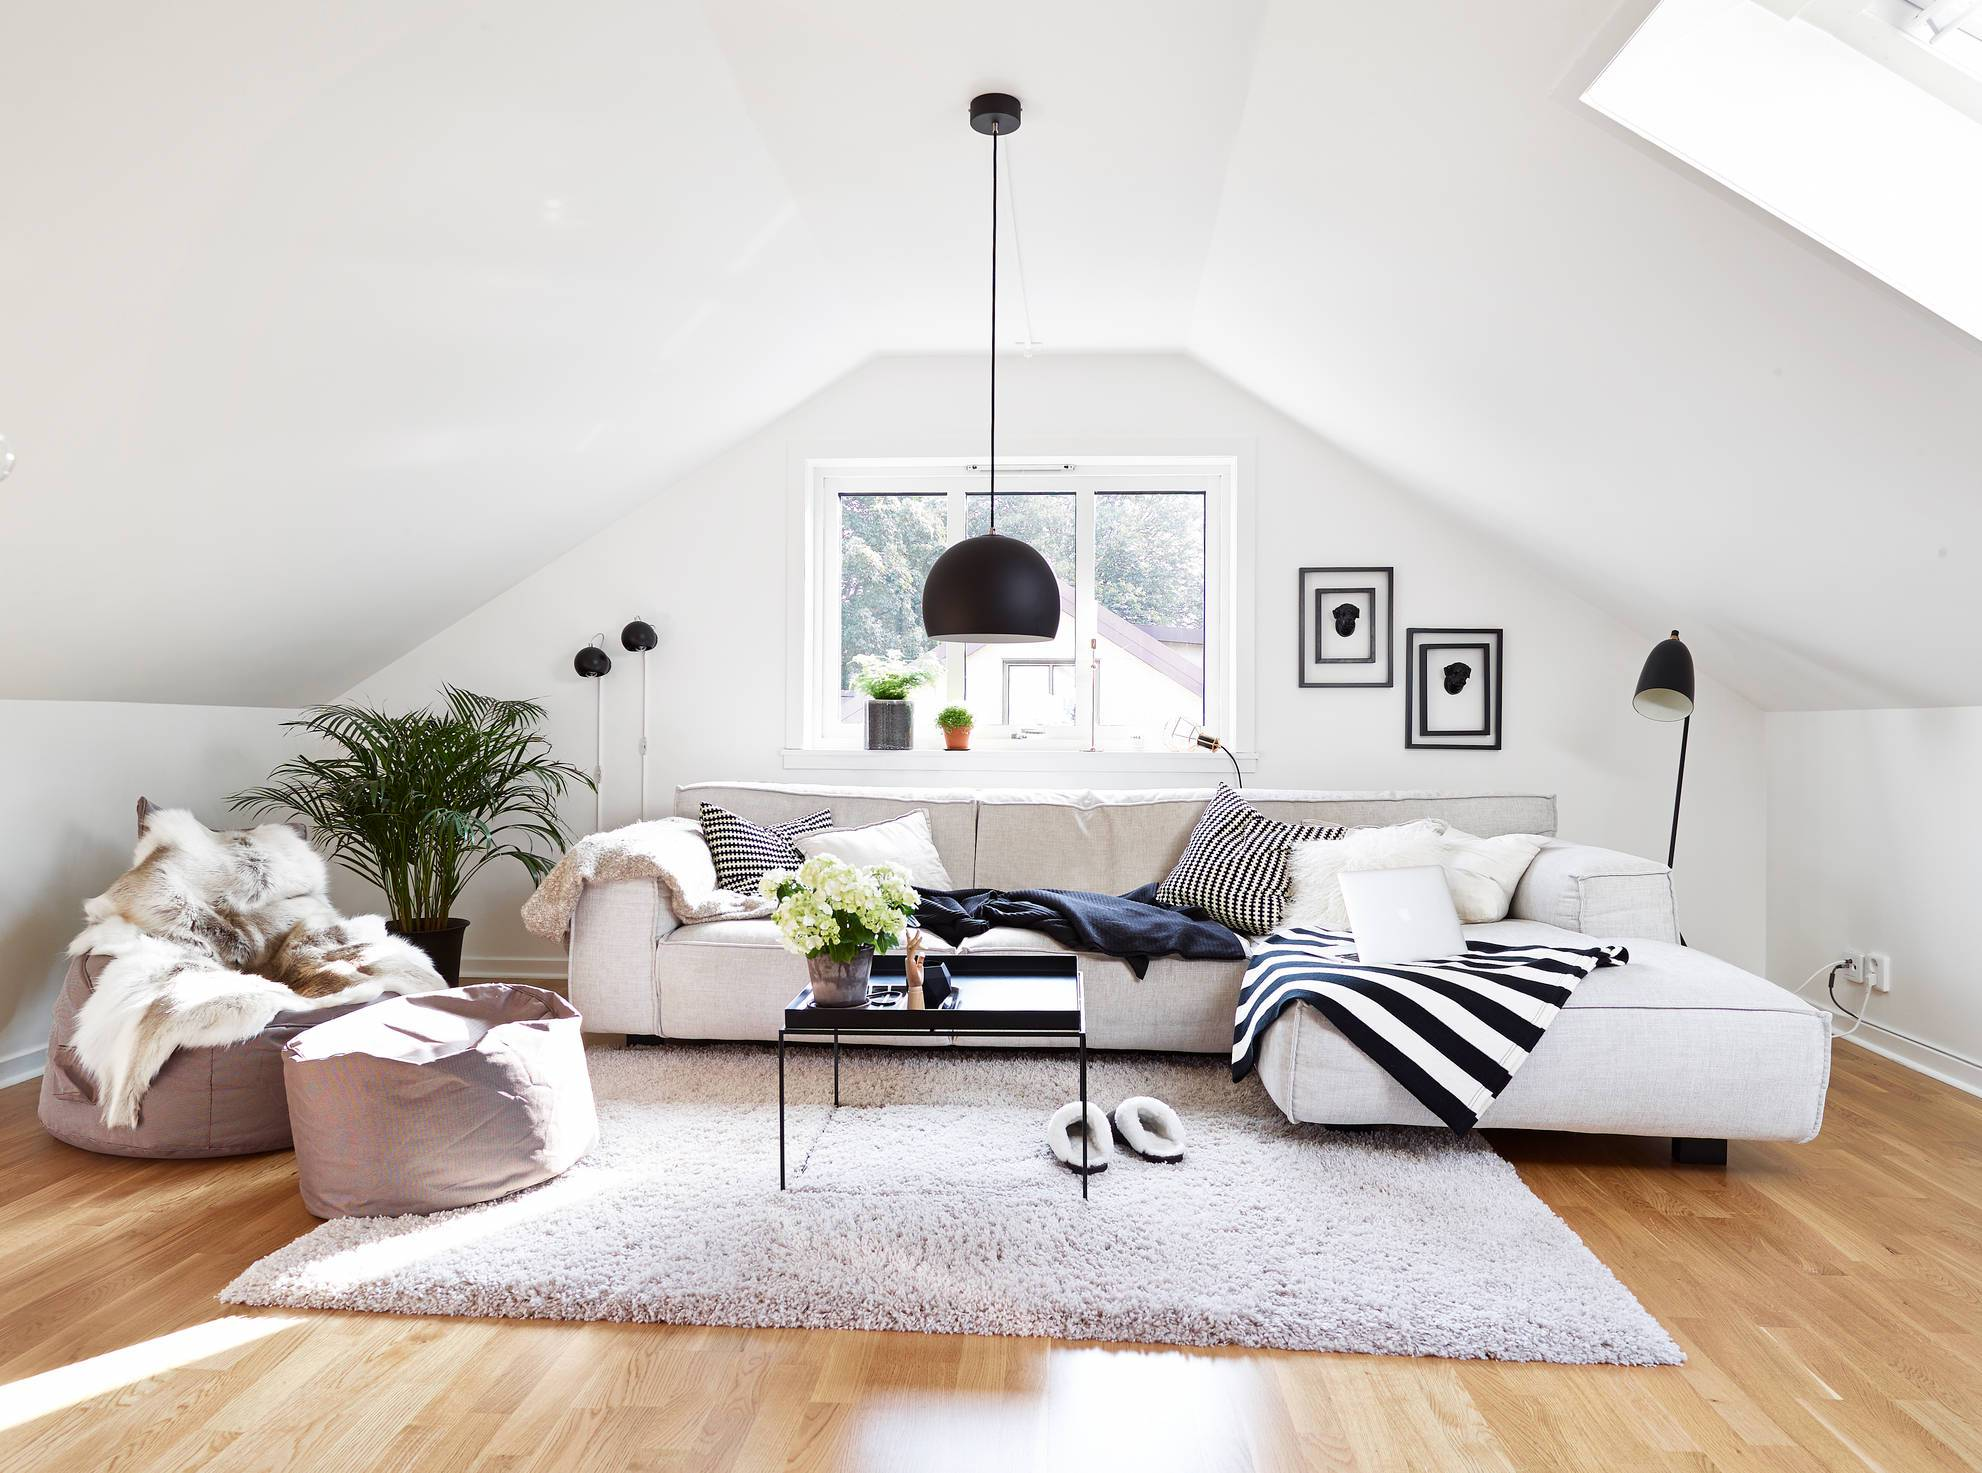 22 Inspirational Ideas Of Small Living Room Design: White Attic Living Room